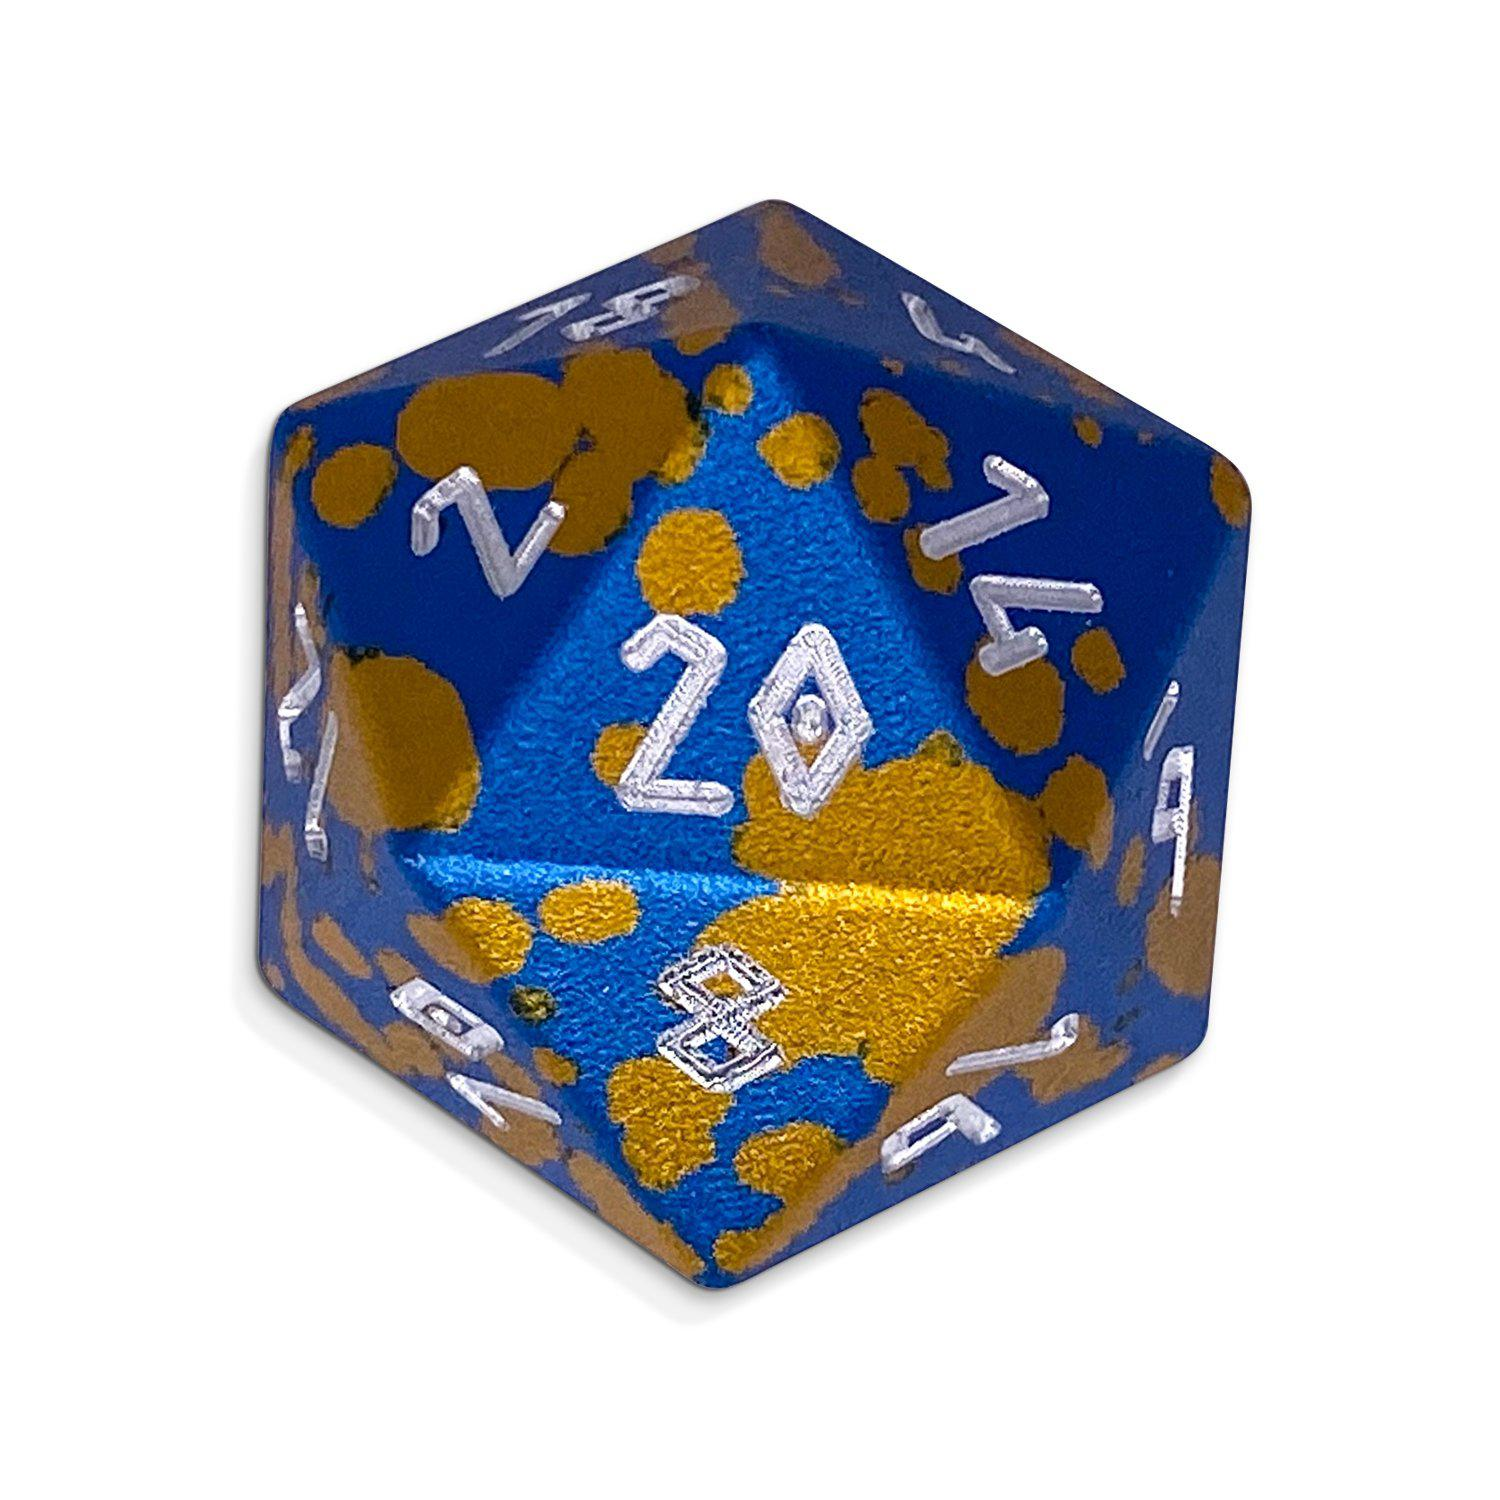 Single Wondrous Dice® D20 in Mimic by Norse Foundry® 6063 Aircraft Grade Aluminum